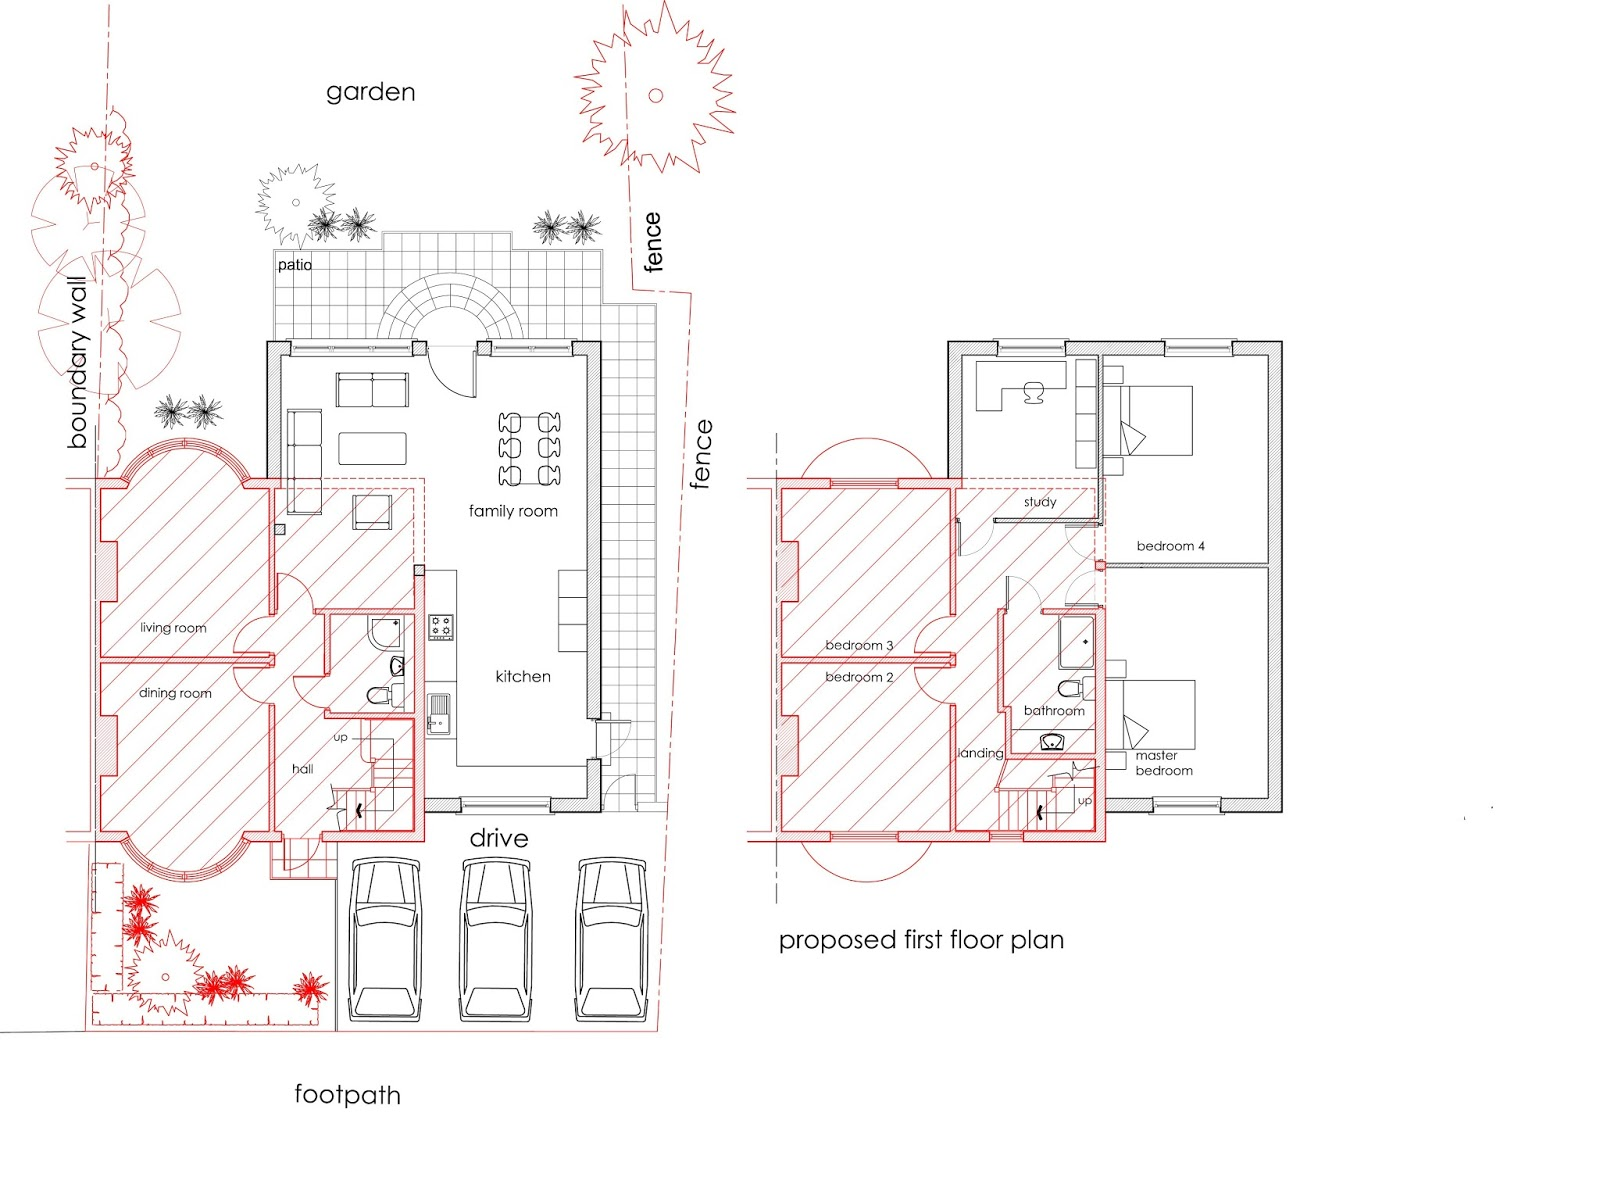 lf design enterprises floor plans planning applications